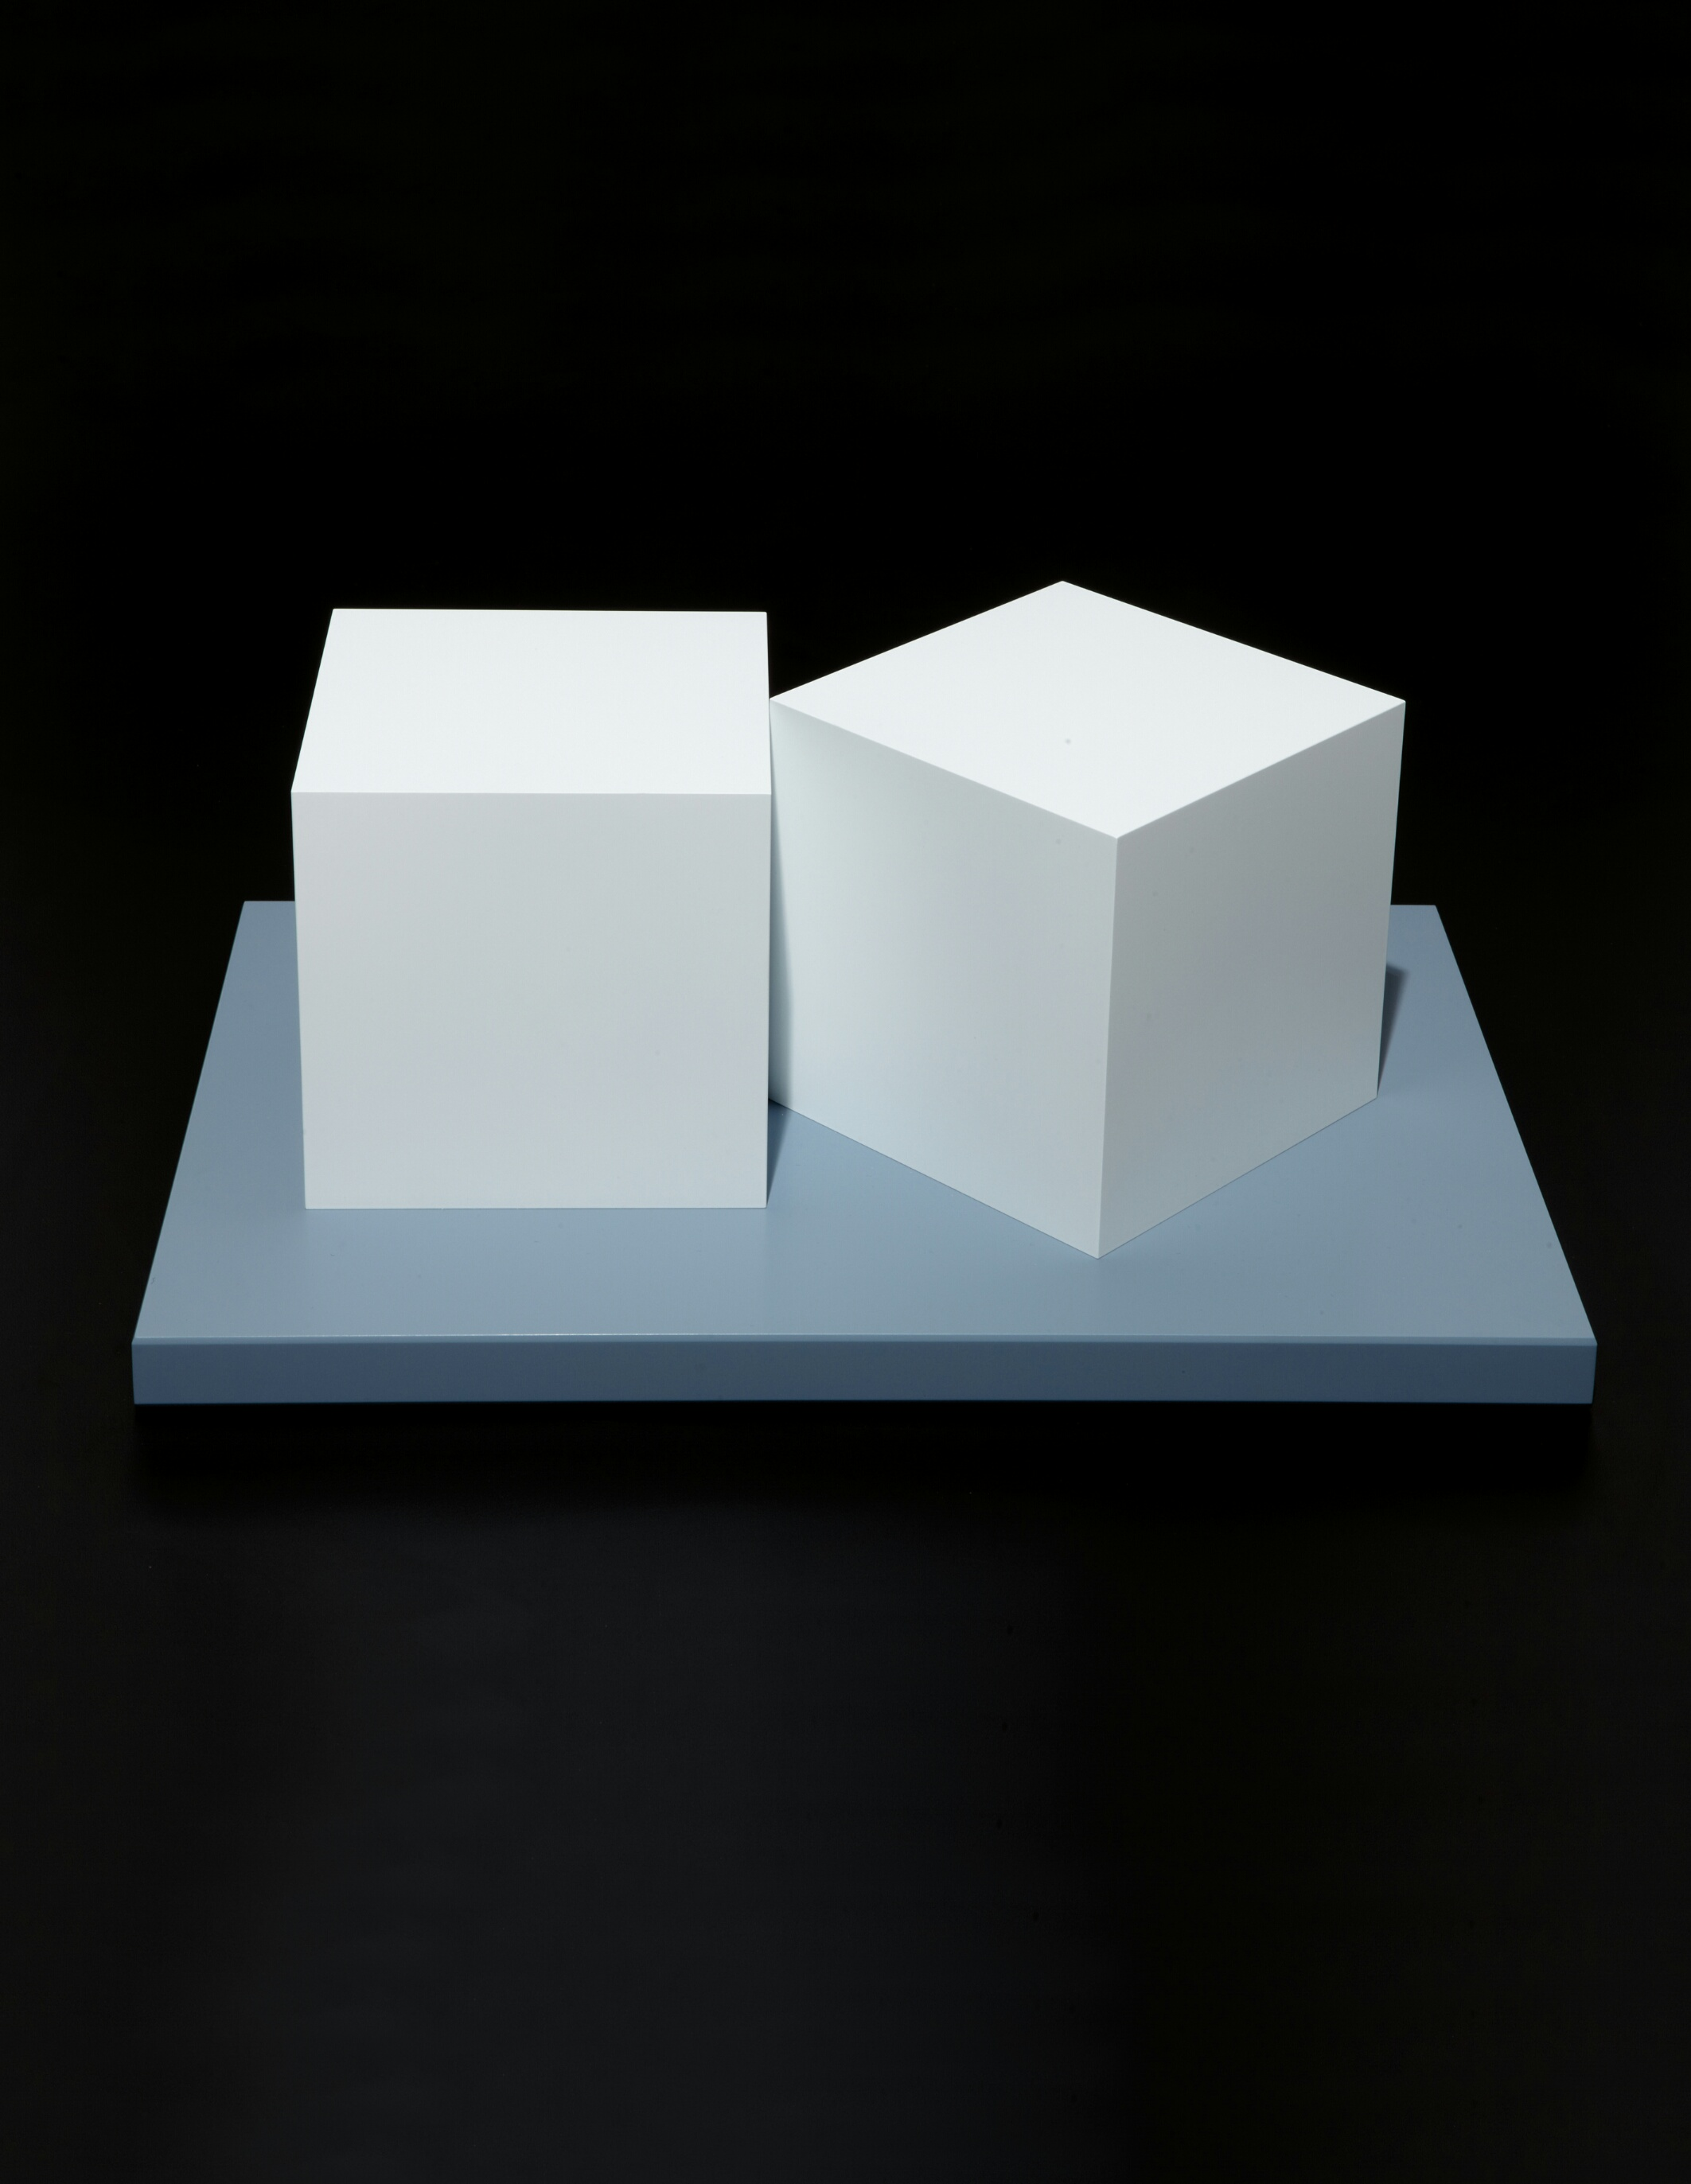 Two Cubes  artwork by Sol LeWitt - art listed for sale on Artplode